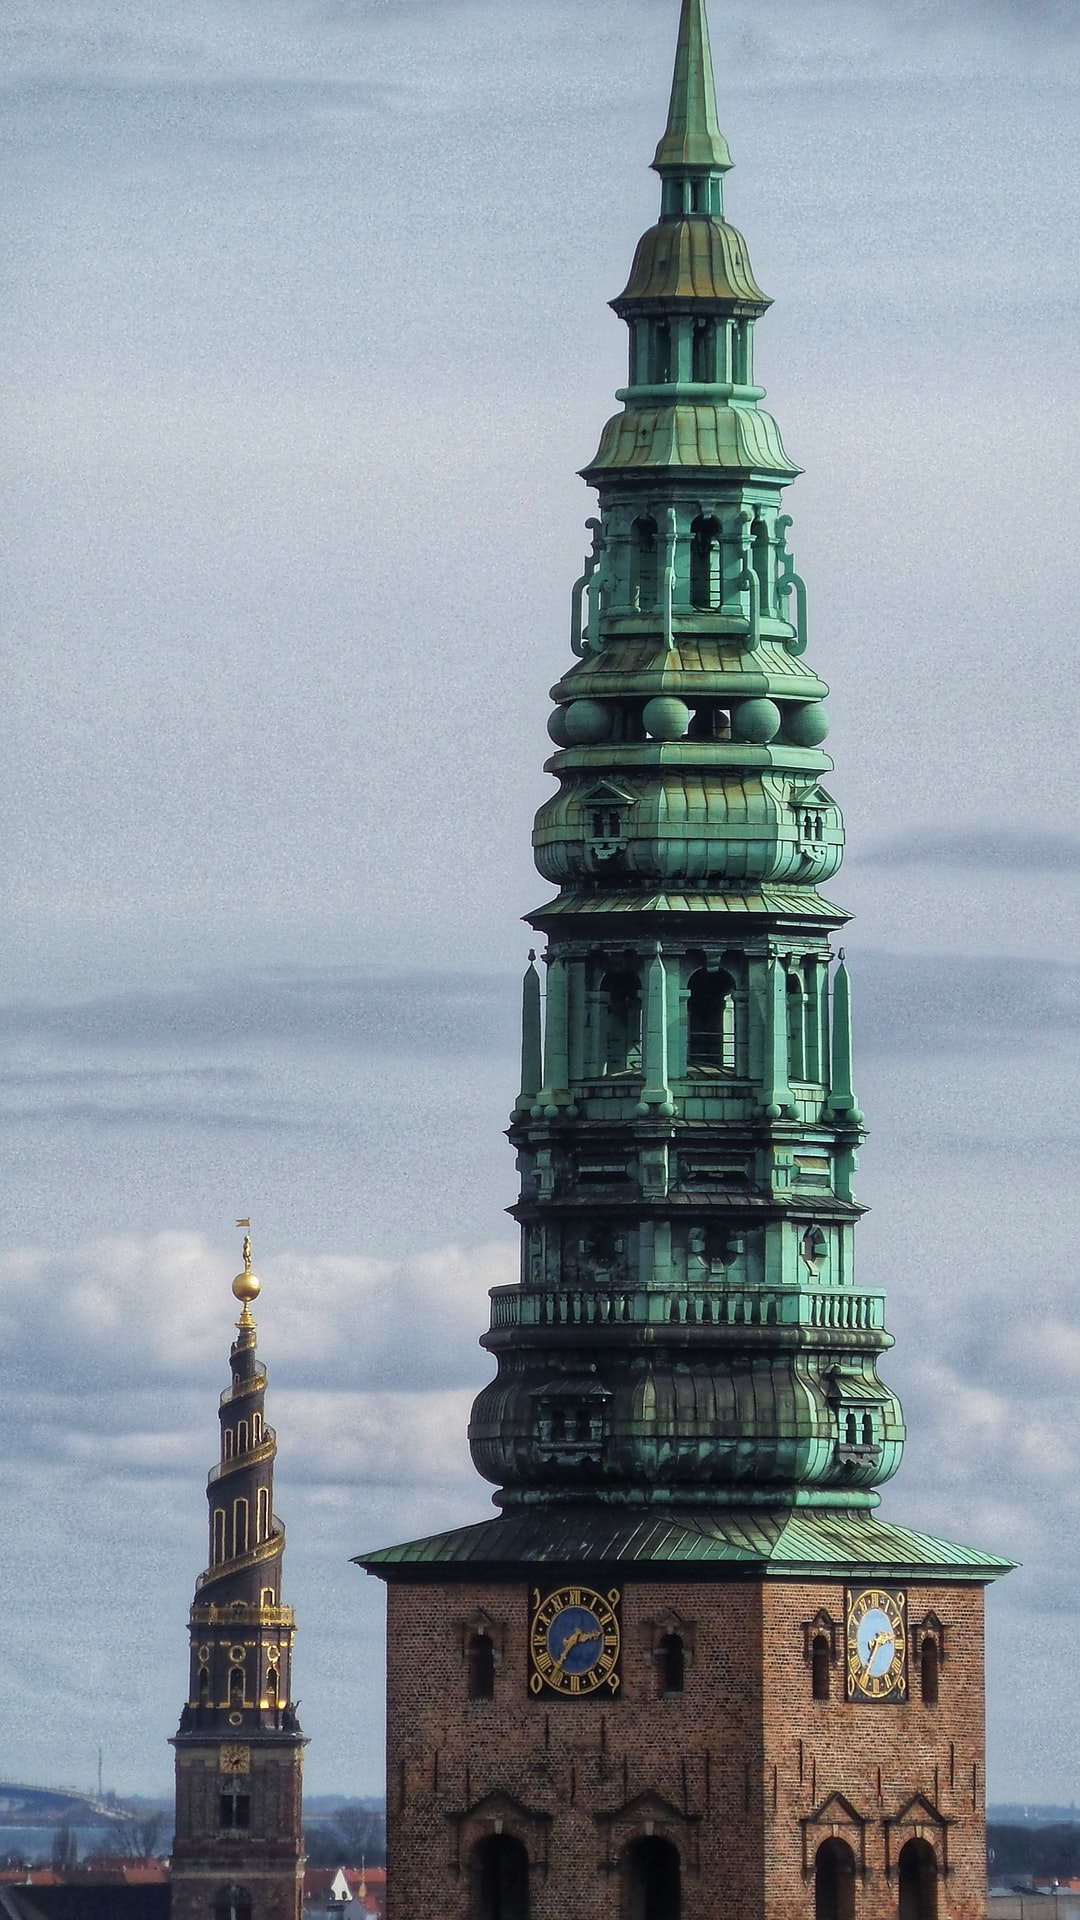 The spires of Nikolaj and The Church of our Saviour on a cloudy day in Copenhagen